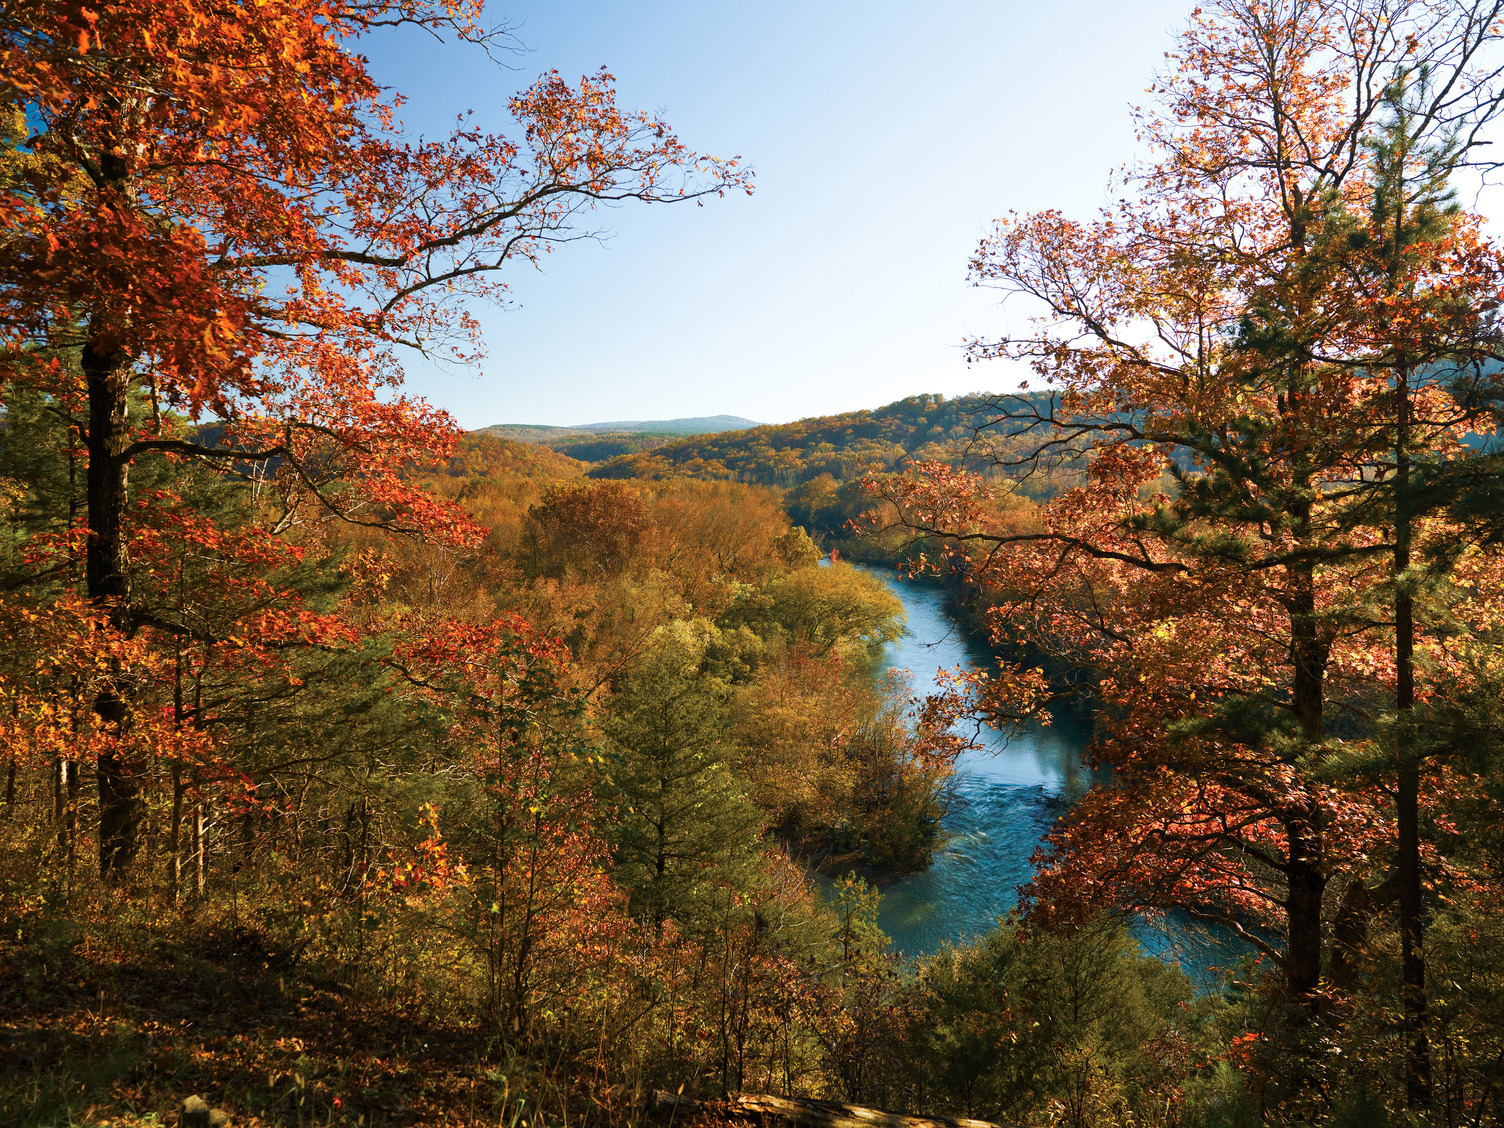 Arkansas's scenic byways lead to fall color